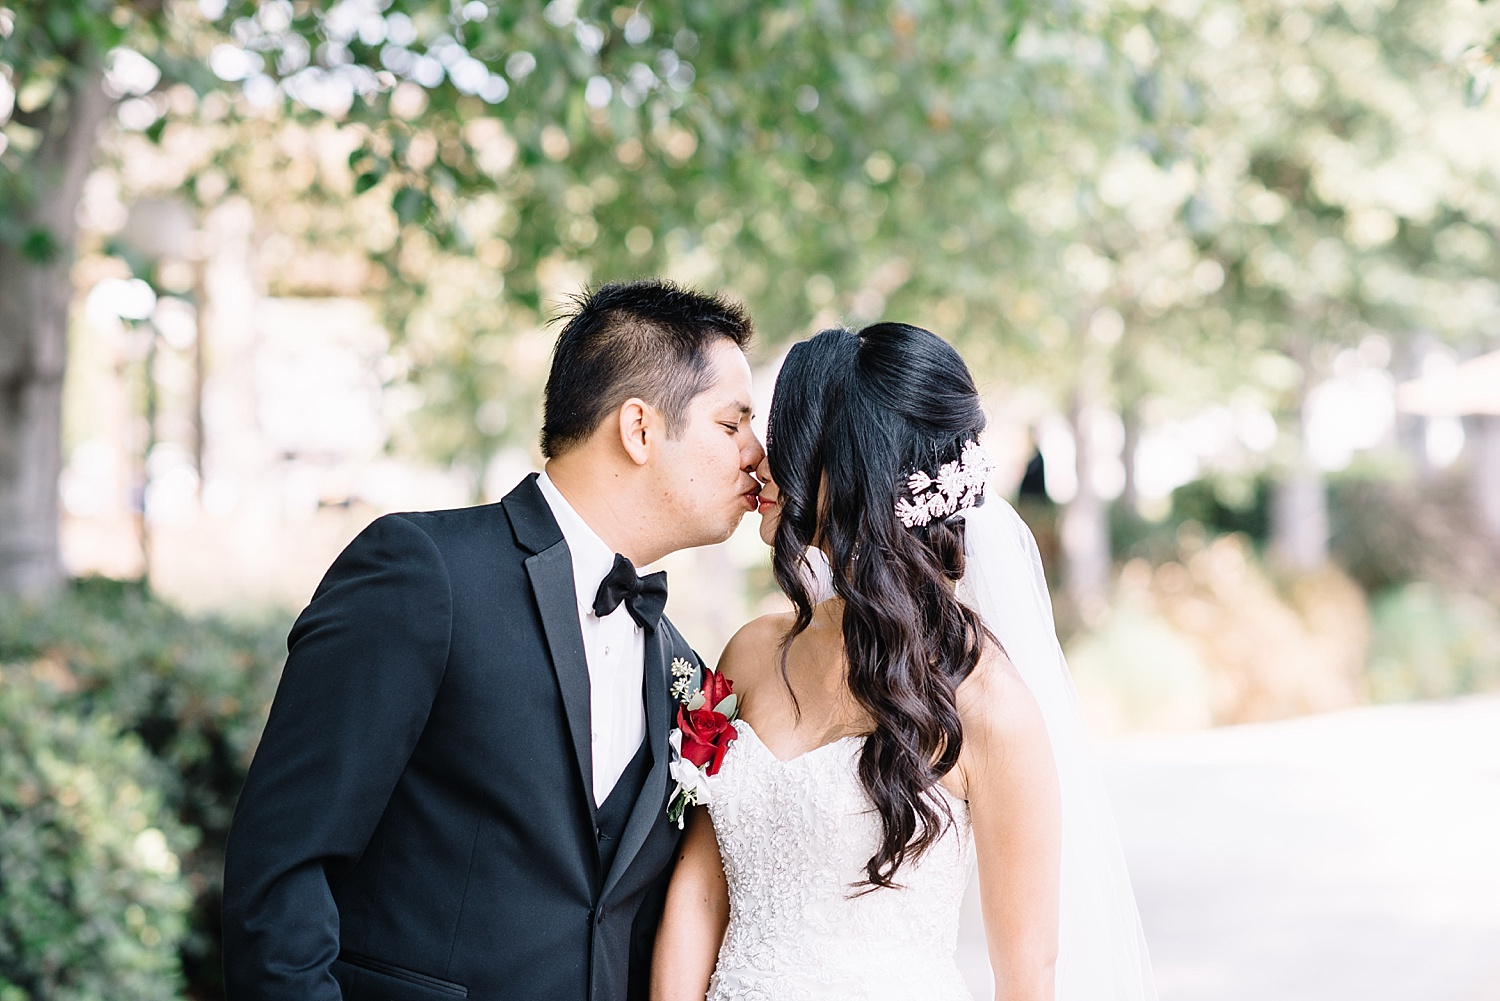 jennifer-jayn-photography-santa-ana-the-estate-on-second-wedding_0007.jpg